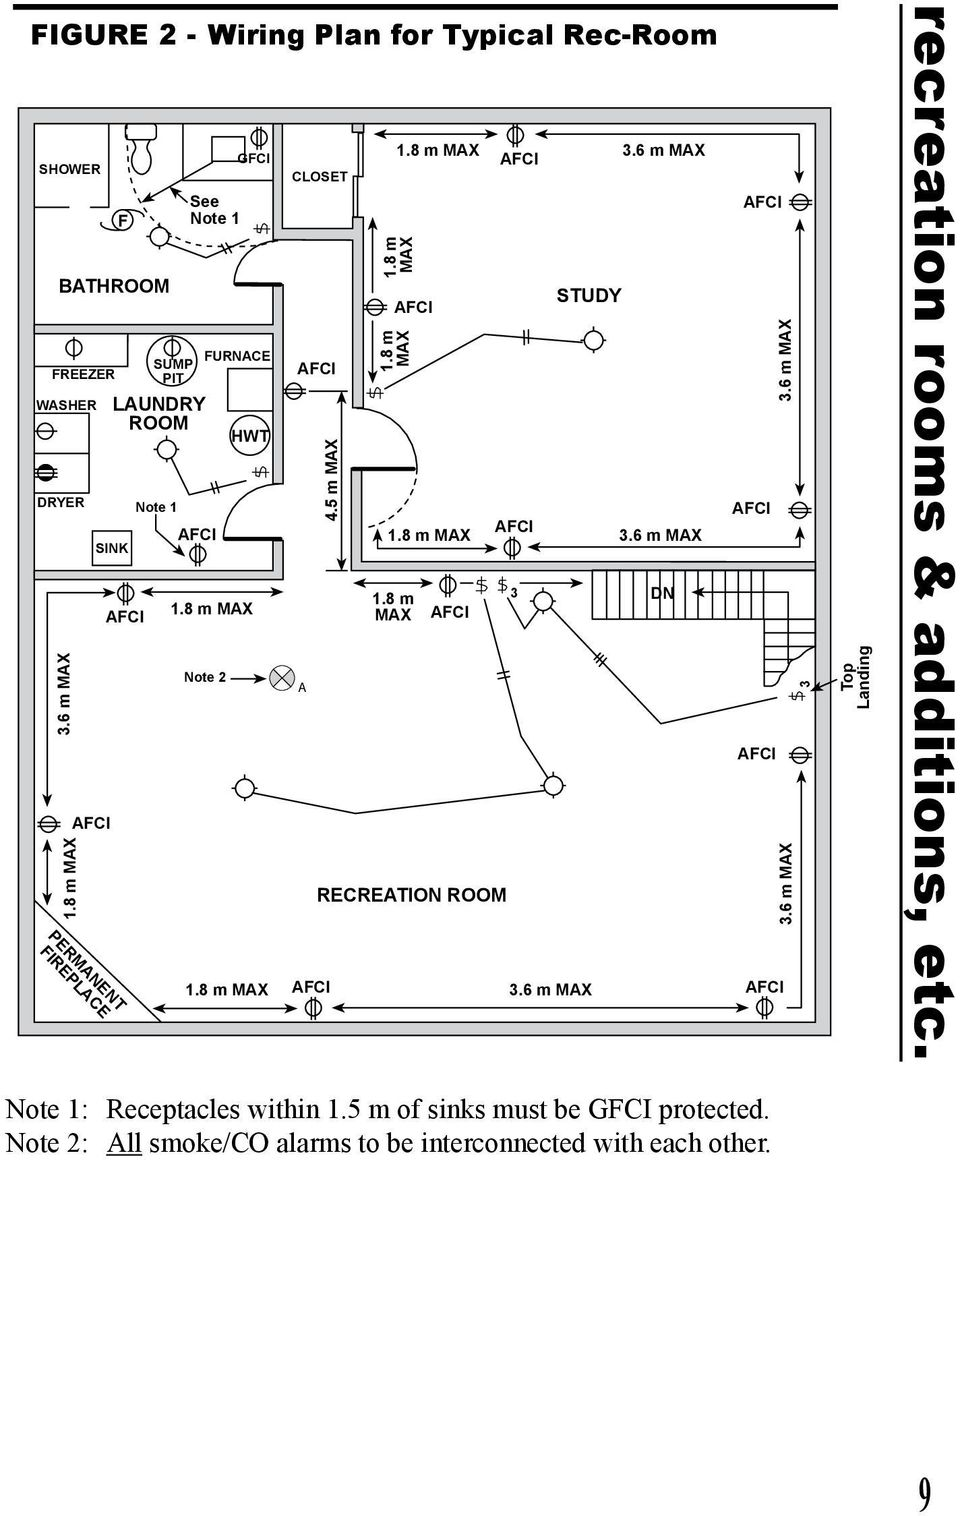 Electrical Installations A Homeowner Guide To The Winnipeg Afci And Gfci Wiring Diagram Find With 5 M Max 18 36 Recreation